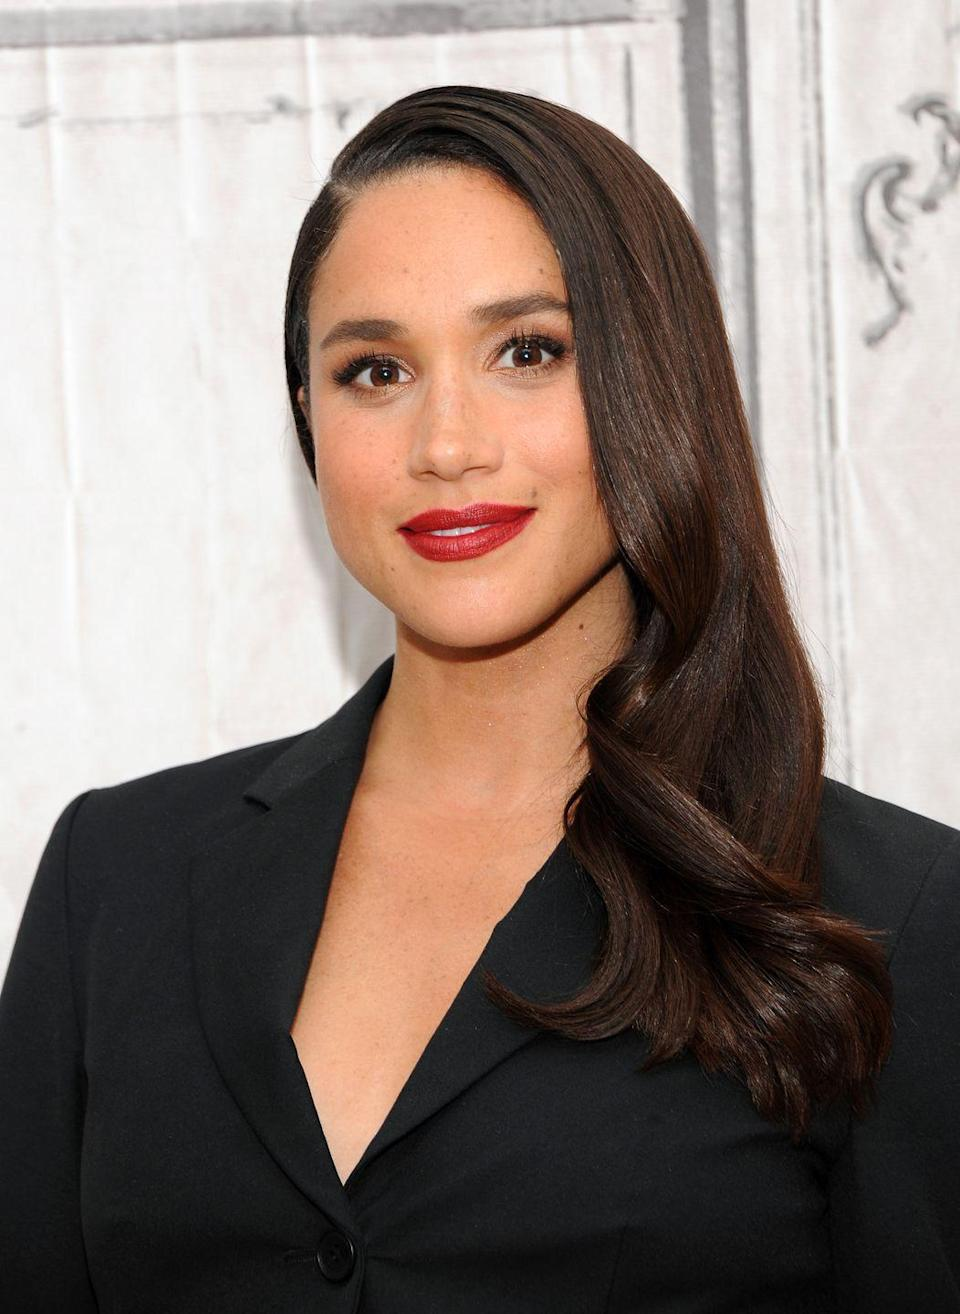 <p><strong>Real name: </strong>Rachel Meghan Markle</p><p>The Duchess of Sussex's middle name is actually Meghan, while her first name is Rachel. </p>